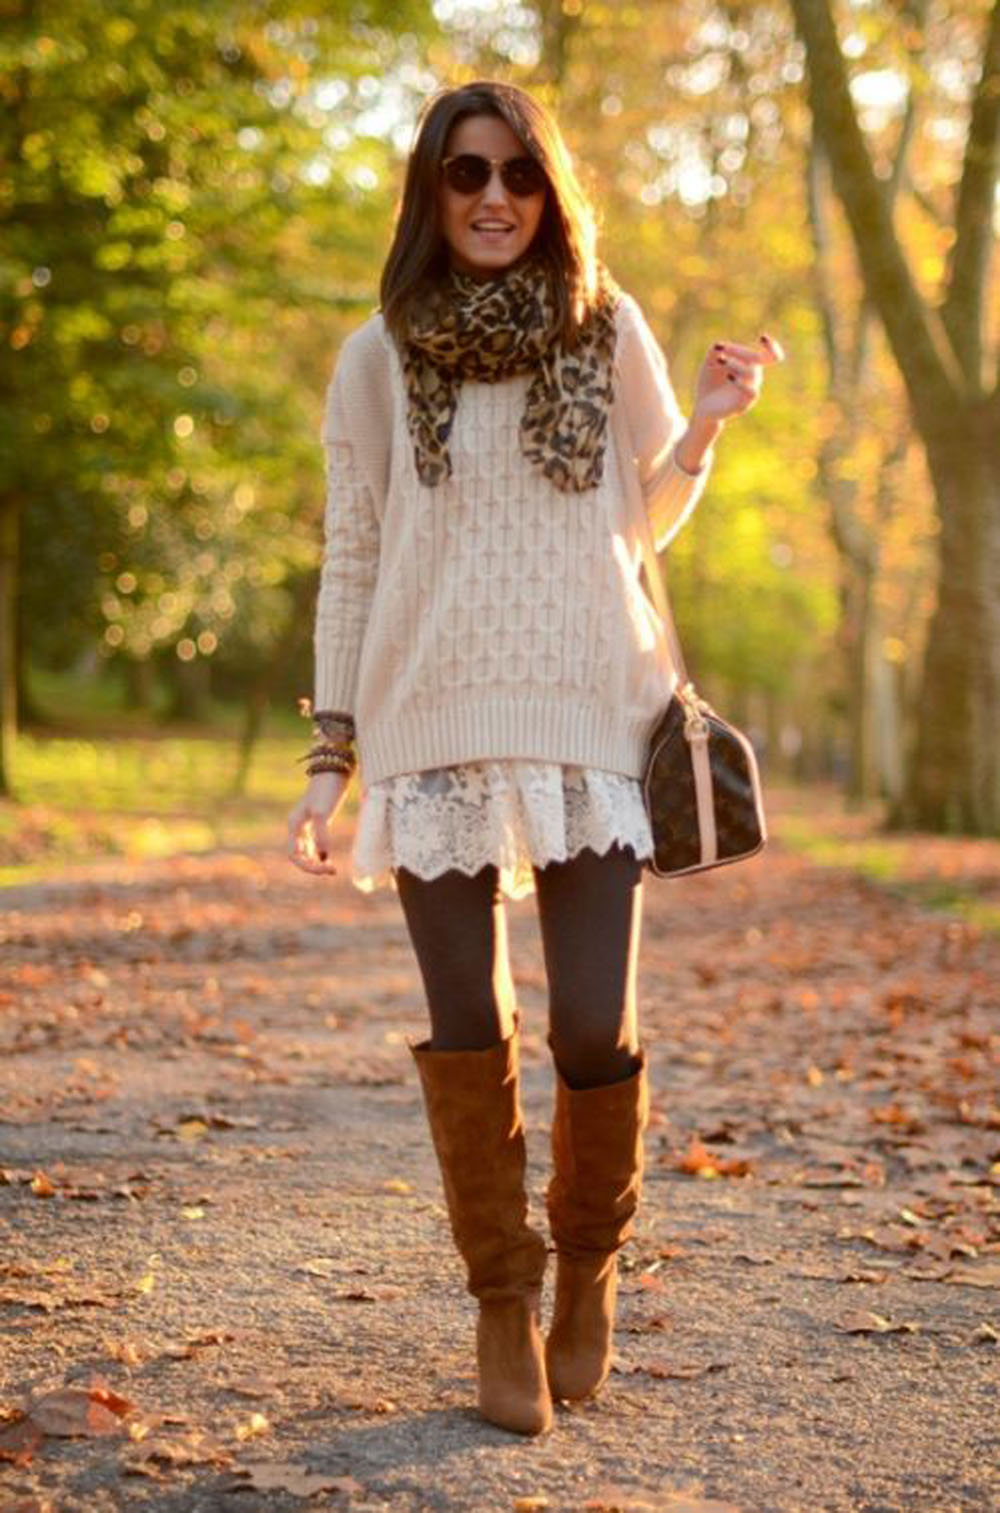 My Favorite Fall Outfits!